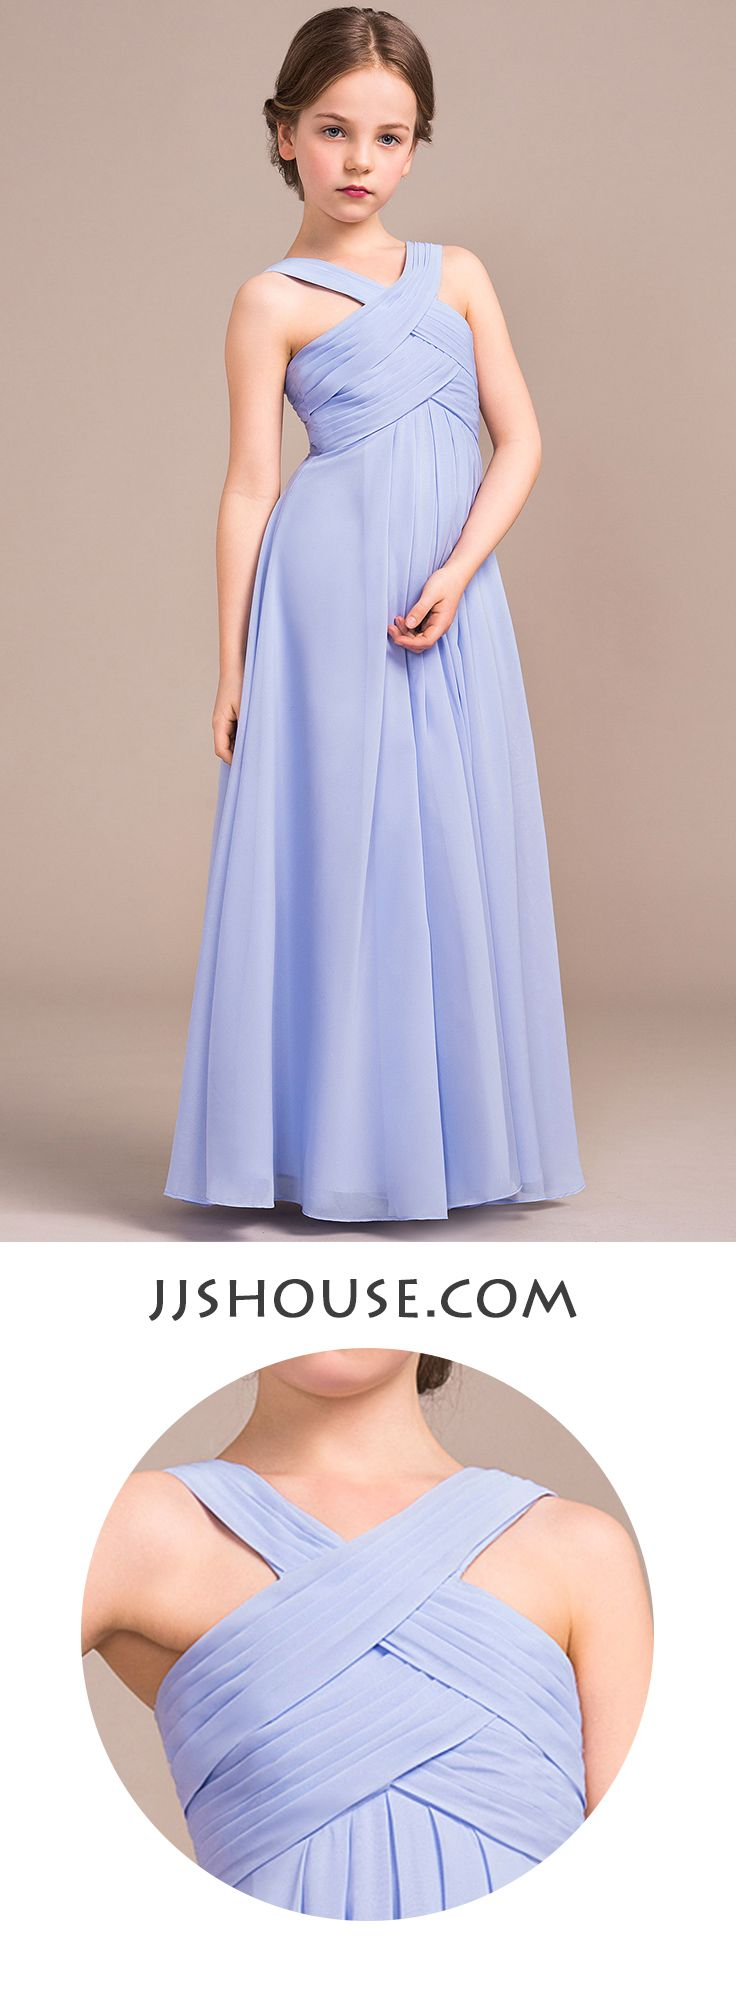 Best 25 junior bridesmaid dresses ideas on pinterest junior the younger girls in your party will blend seamlessly in this junior bridesmaid dress ombrellifo Choice Image